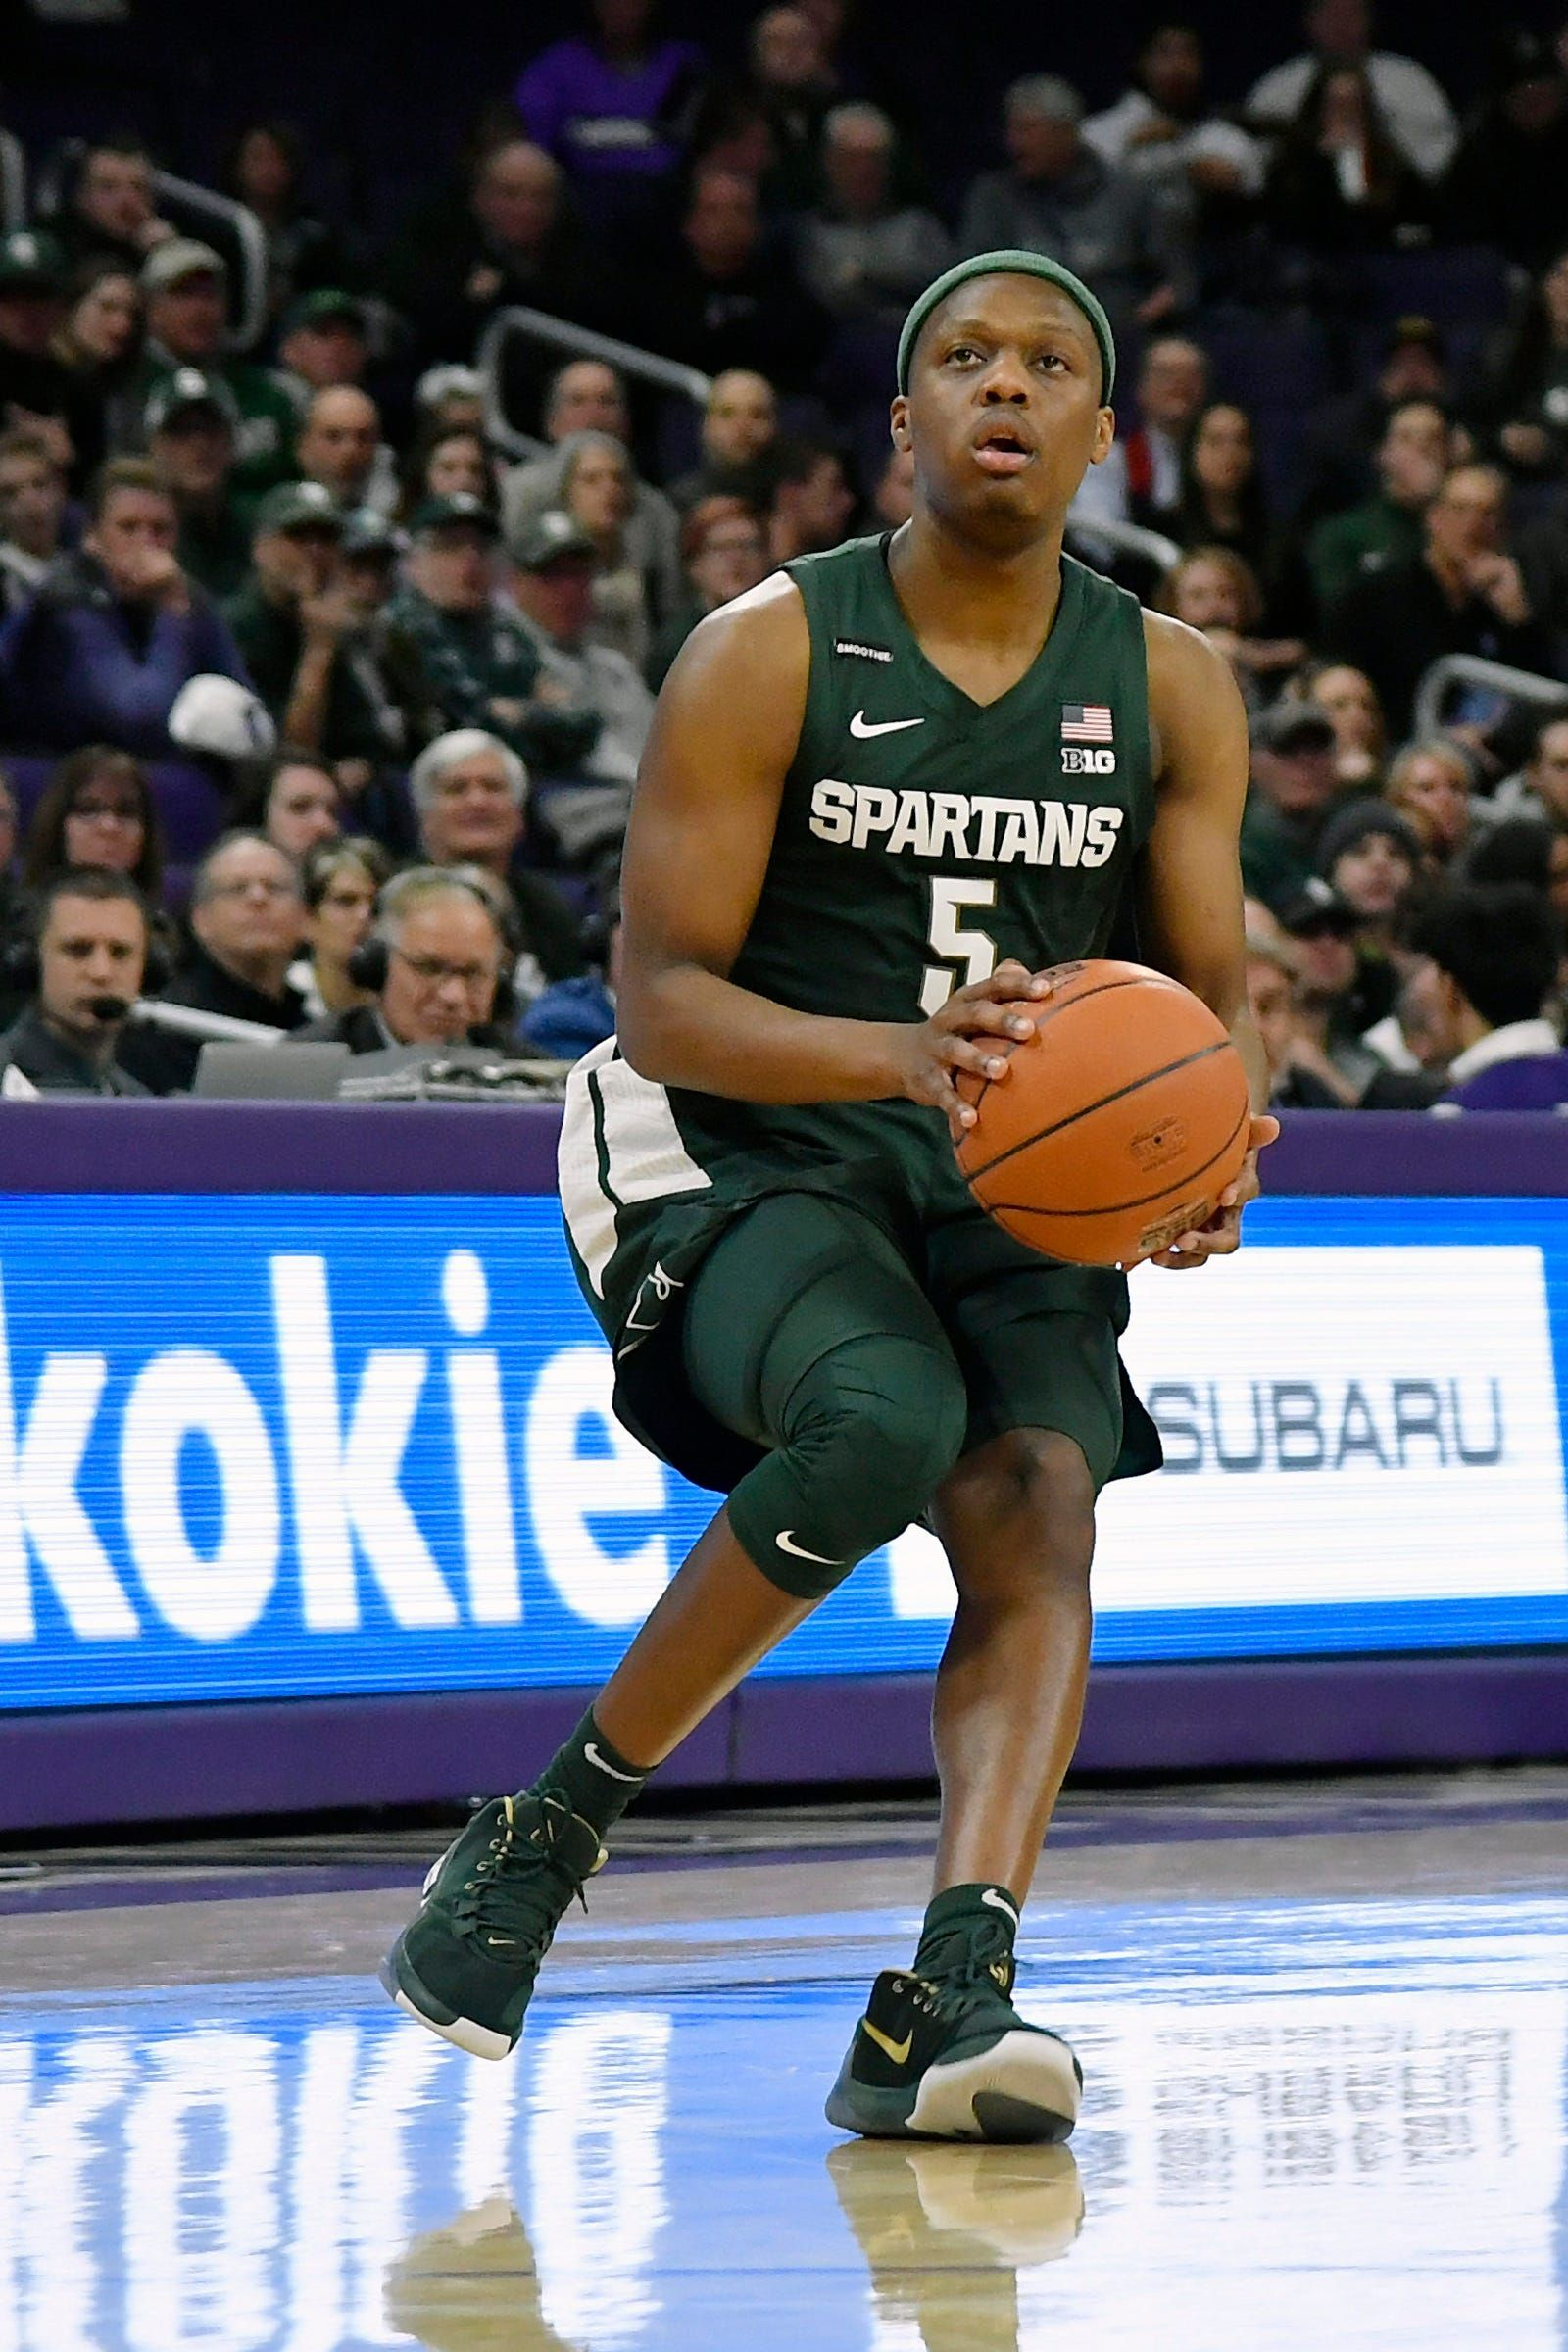 michigan state basketball vs eastern michigan how to watch tonight at breslin center eastern michigan michigan state basketball michigan state pinterest